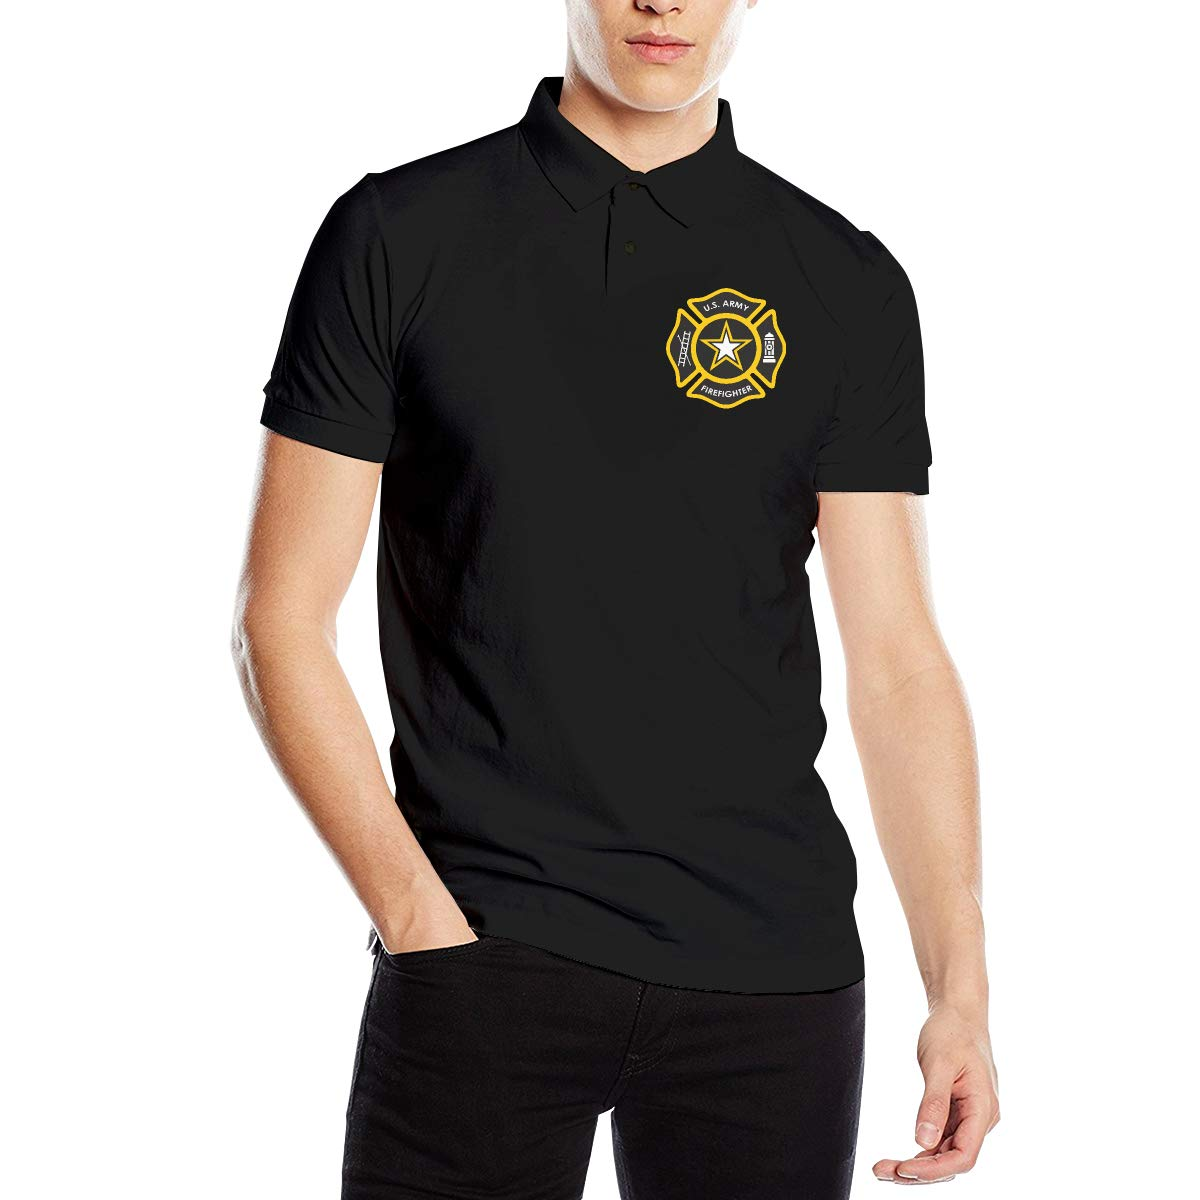 U.S Army Firefighter Mens Short Sleeves Polo Sport Shirt